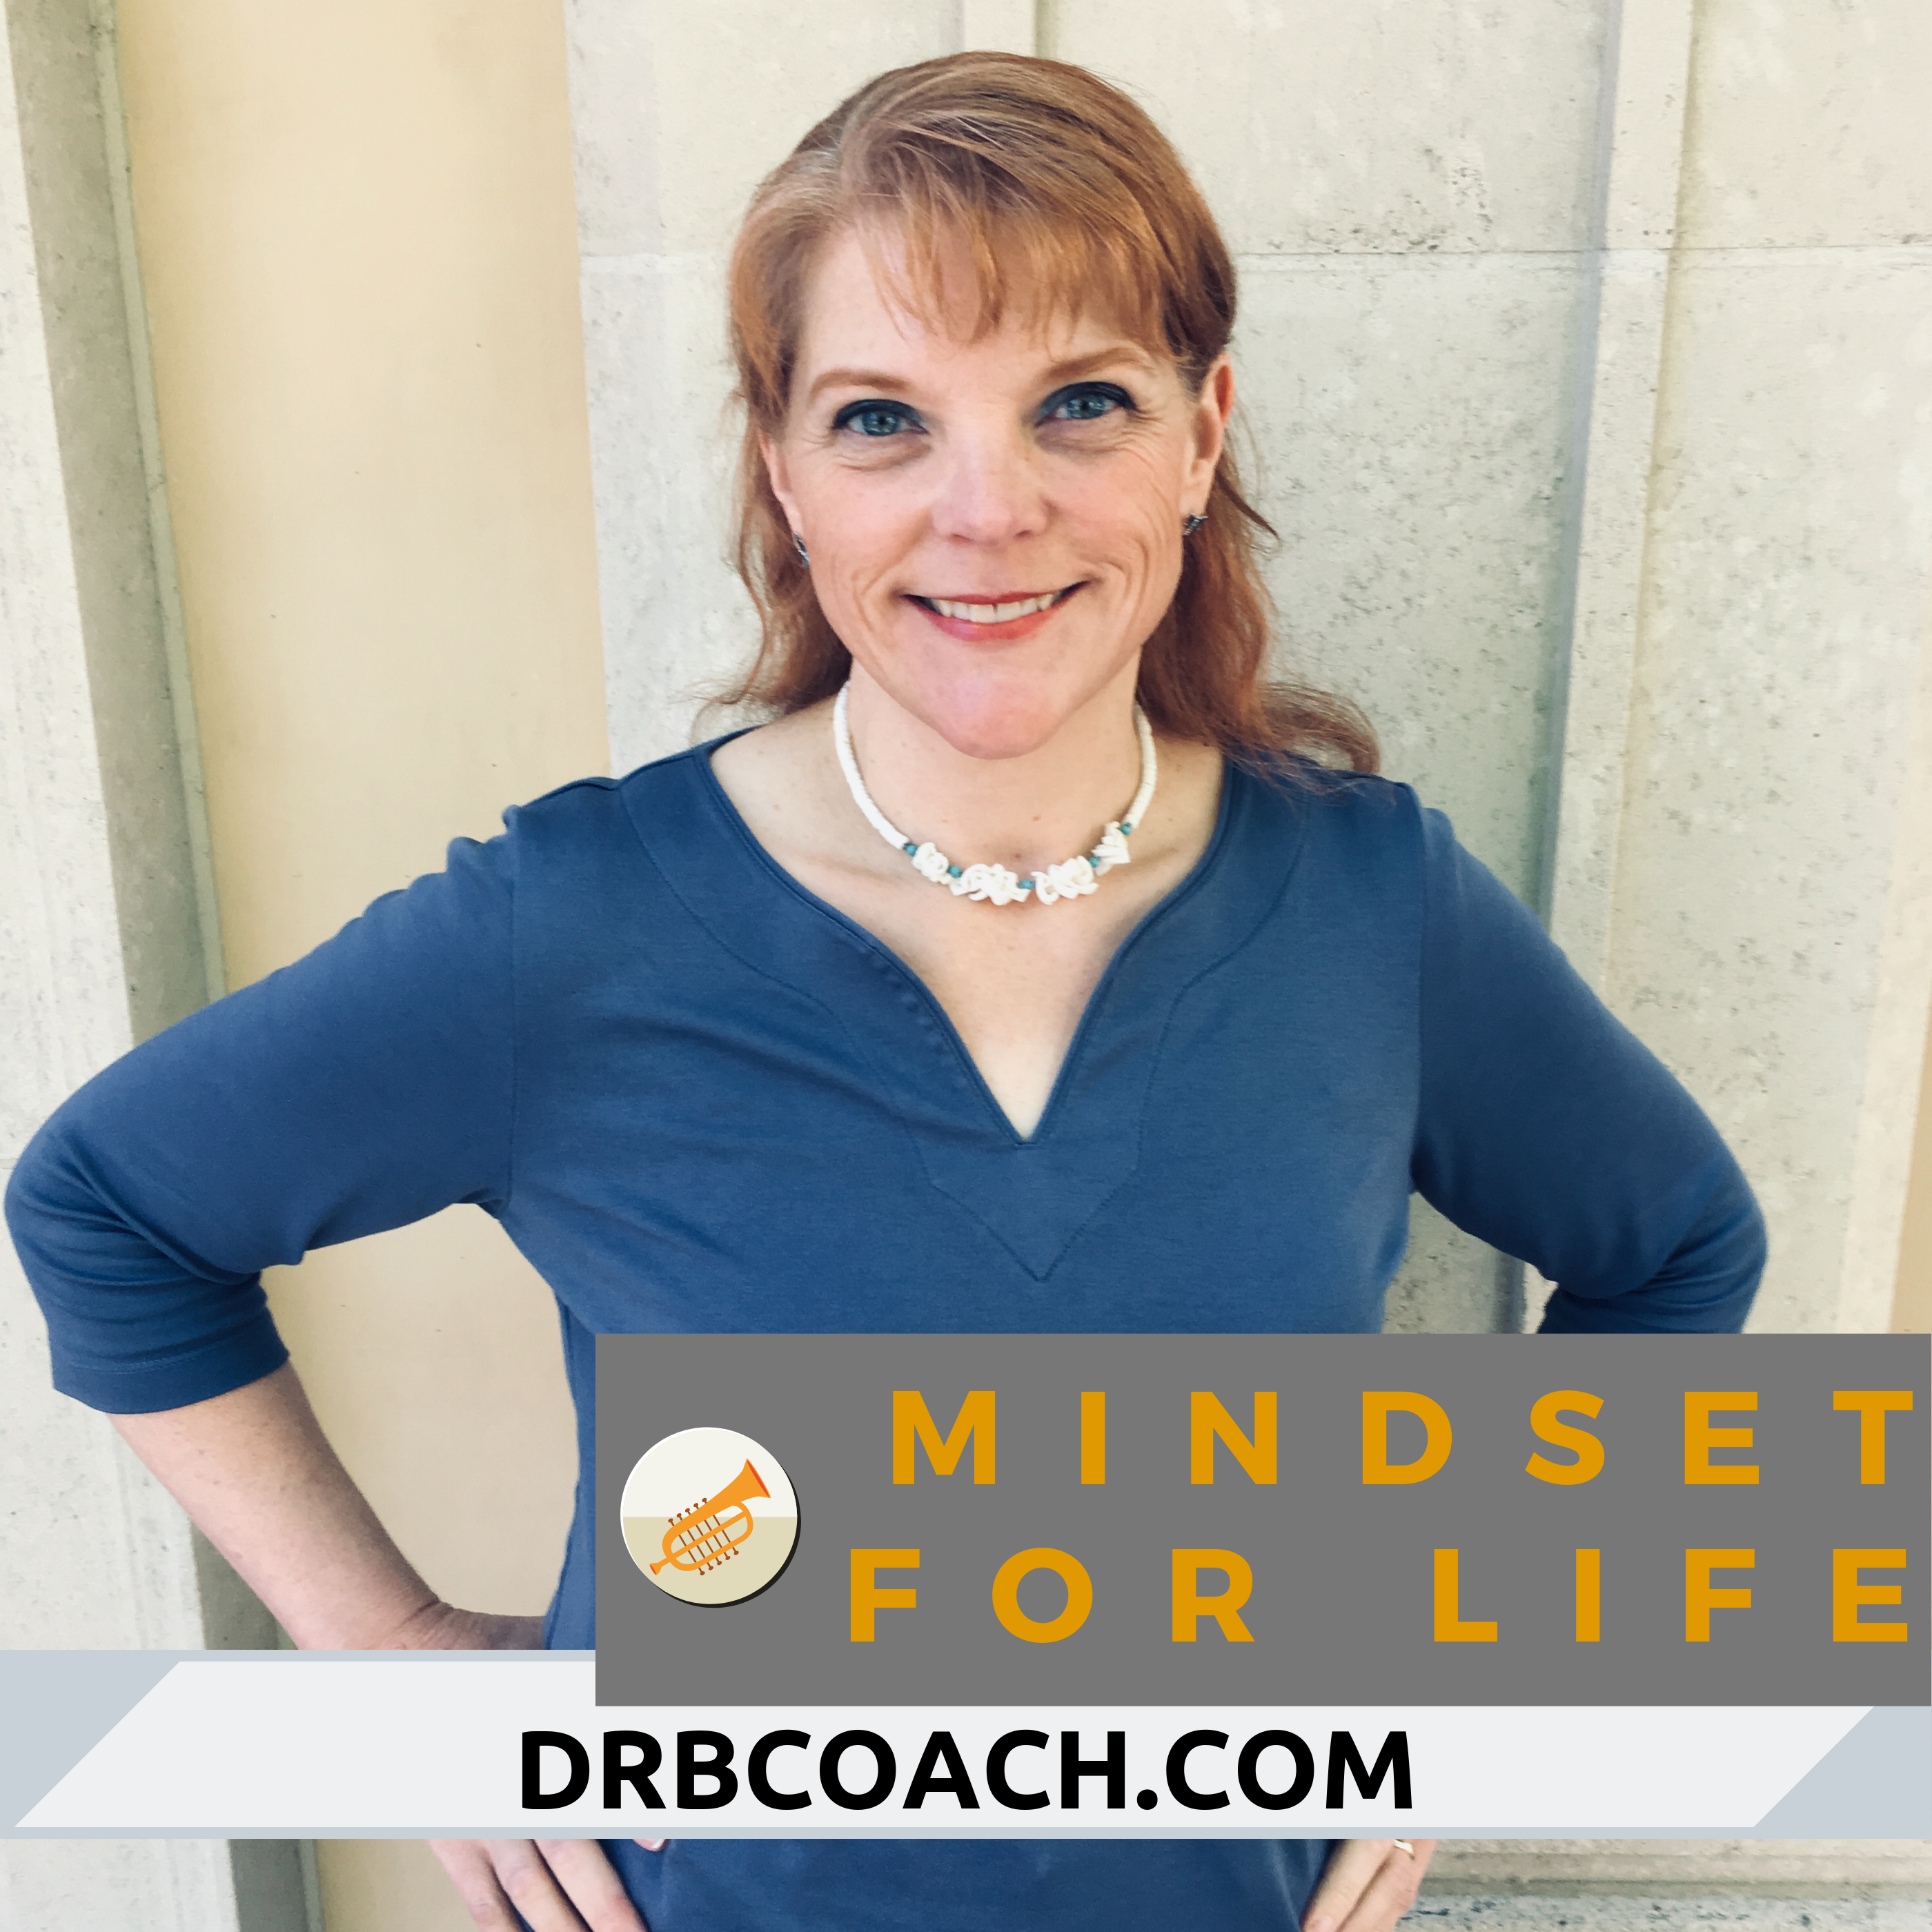 A highlight from #85: A Mindset to Take Action